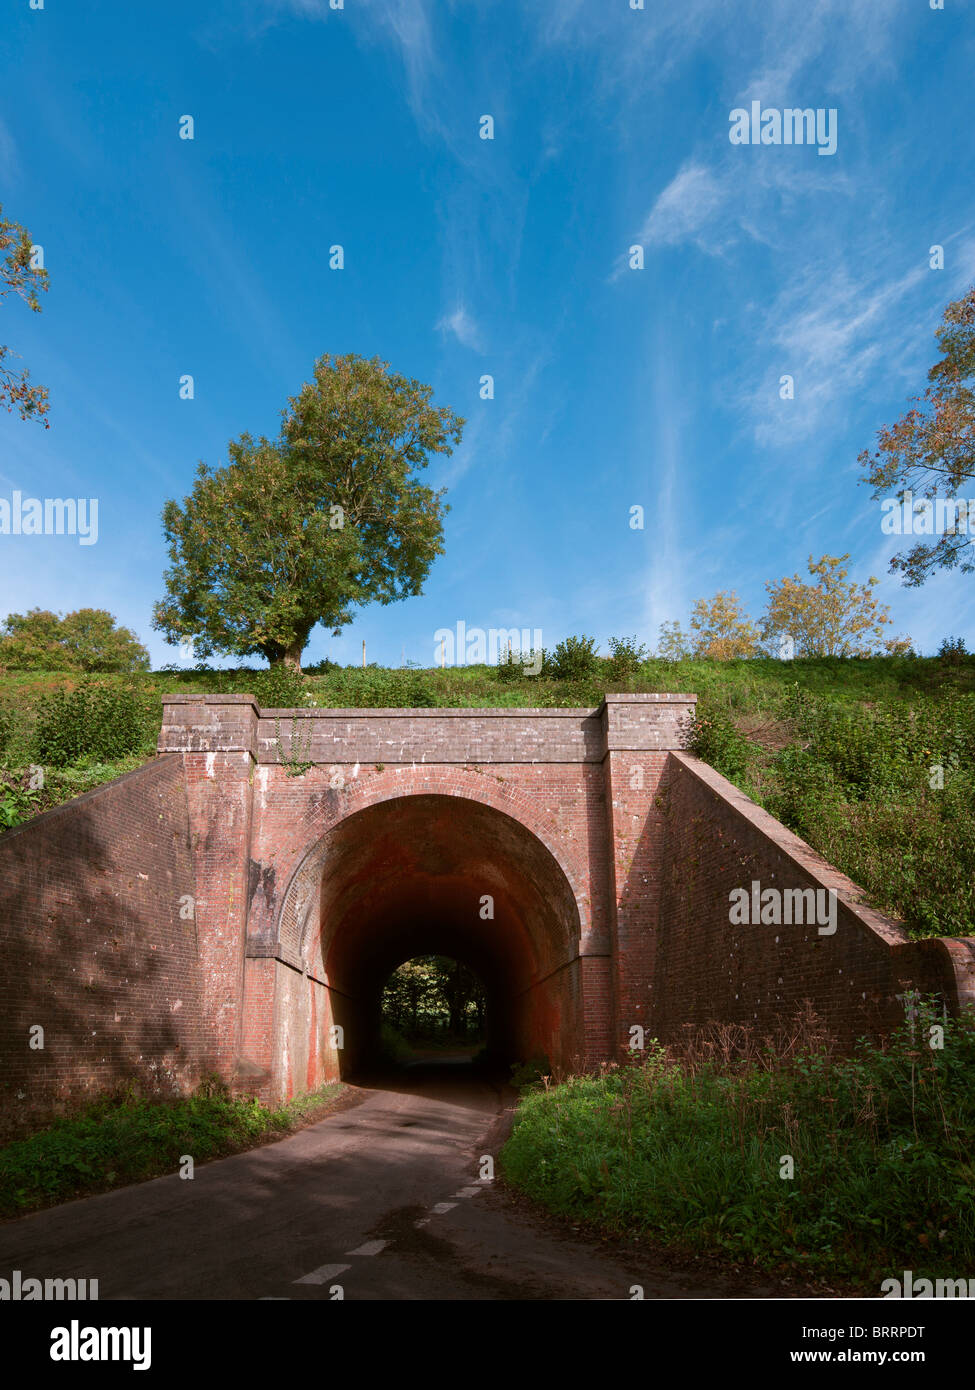 Red Brick Tunnel on a rail embankment with road under with single tree and blue sky - Stock Image